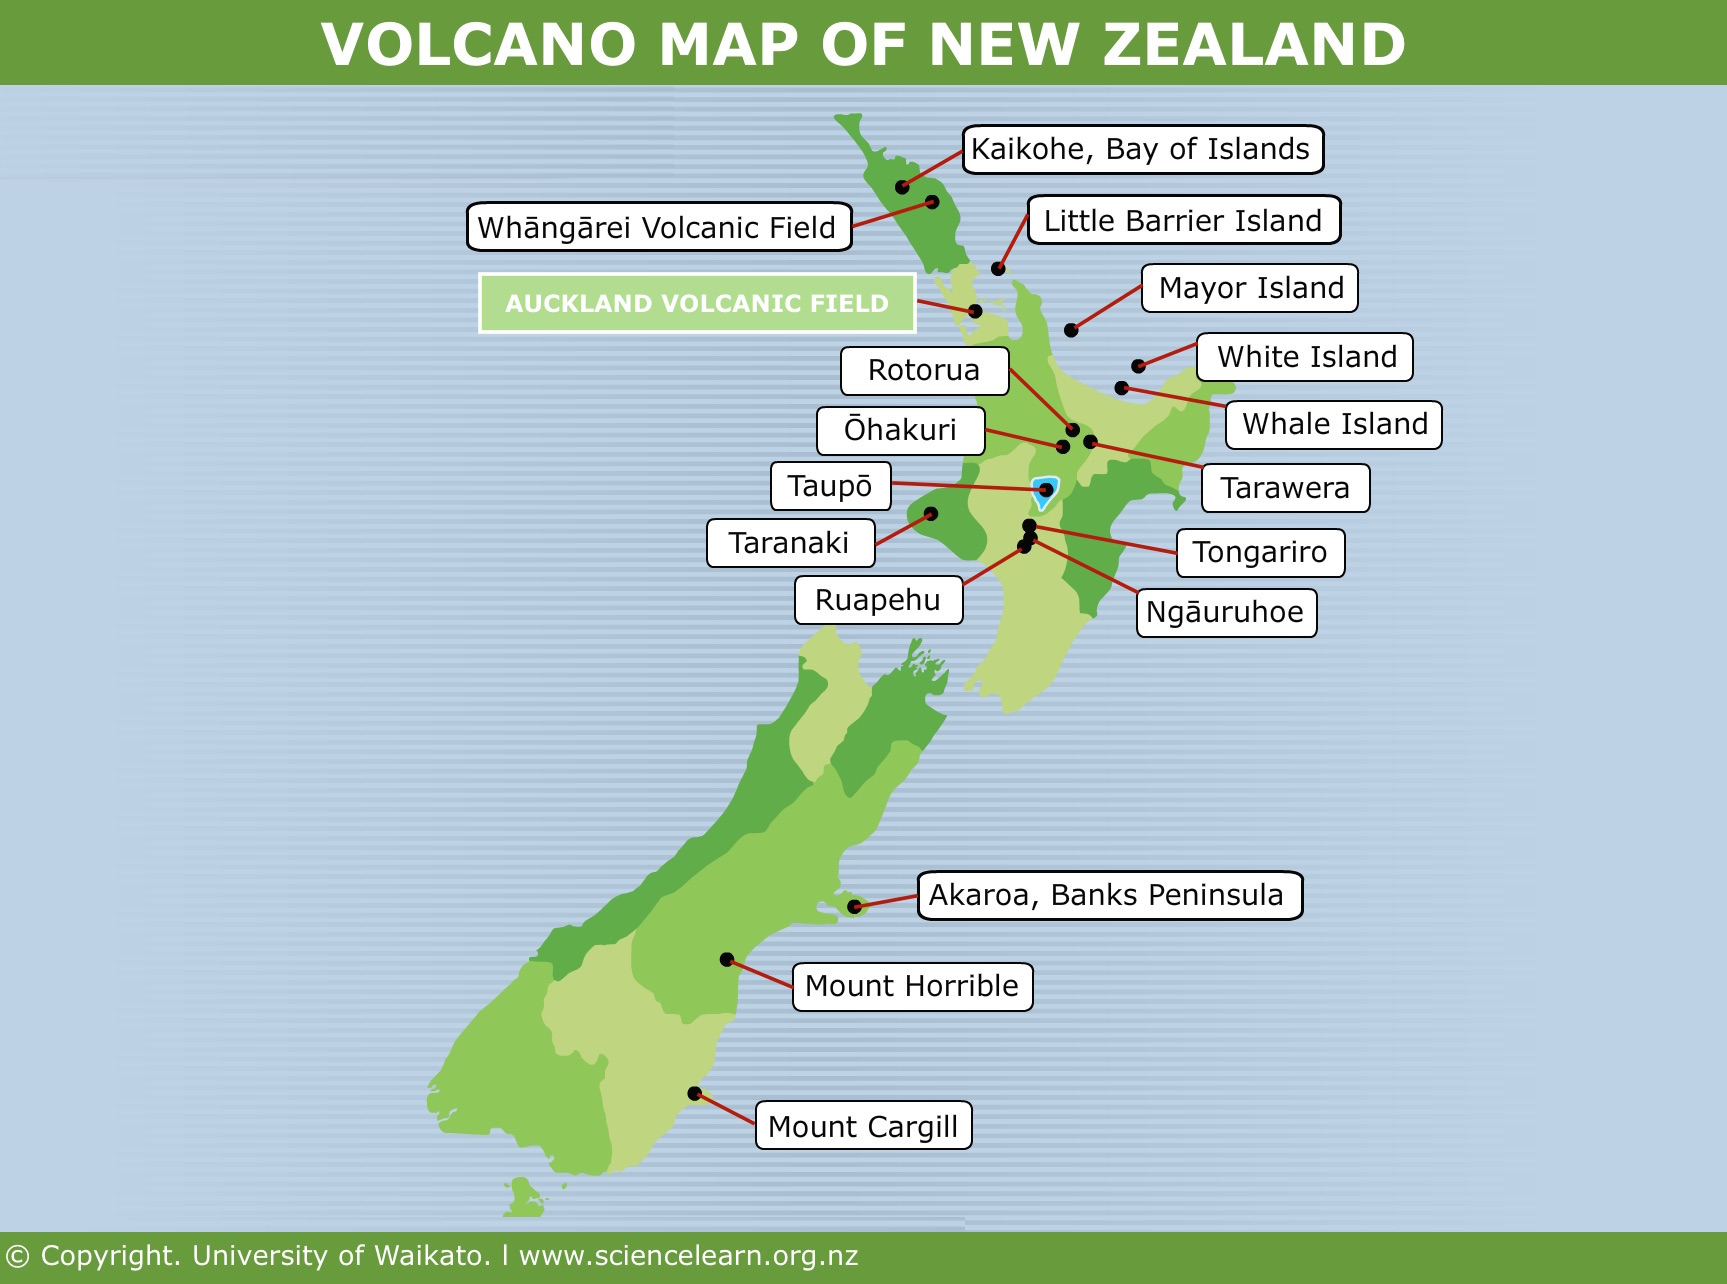 Volcano map of New Zealand — Science Learning Hub on map of north island, map of south new jersey, map of hong kong, map of new zealand south pacific, map of southern alps, map of tasman sea, map of christchurch, map of long island new york, map of south america countries and capitals, map of parris island south carolina, christchurch new zealand, map of new south wales, detailed maps new zealand, map of south america and central america, rotorua new zealand, map of beaches, southern island of new zealand, map of mountains, map of australia, map of new jersey cities and towns,